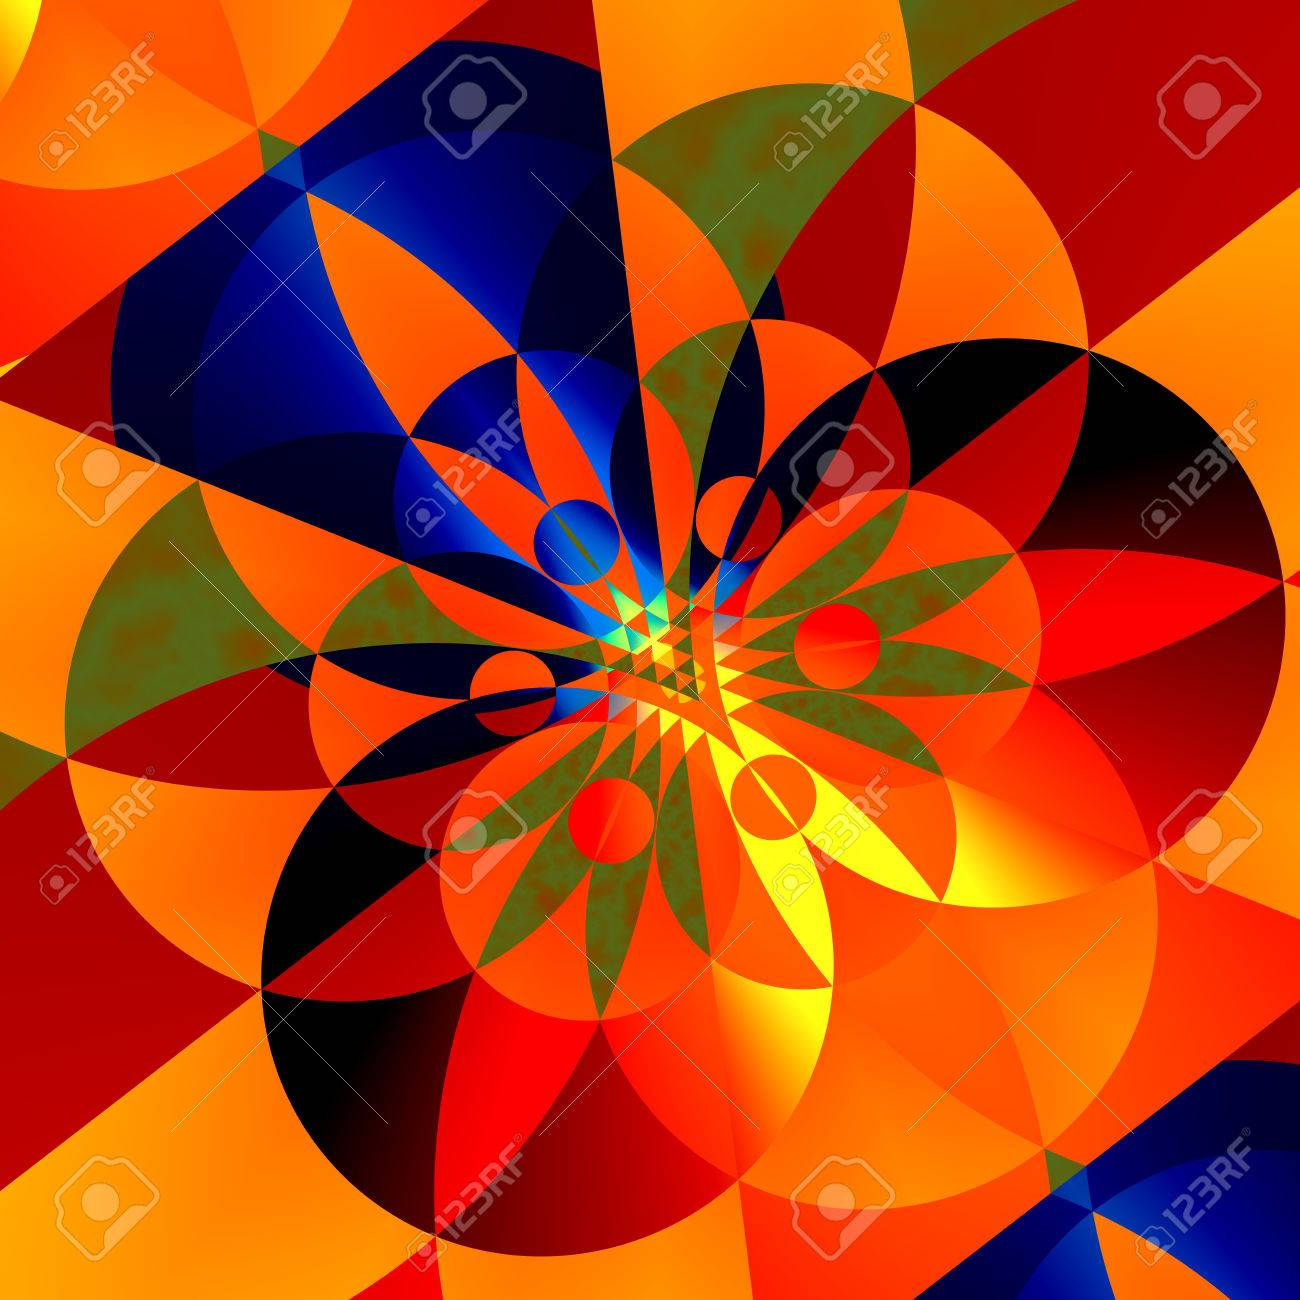 geometric background for design artworks colorful abstract